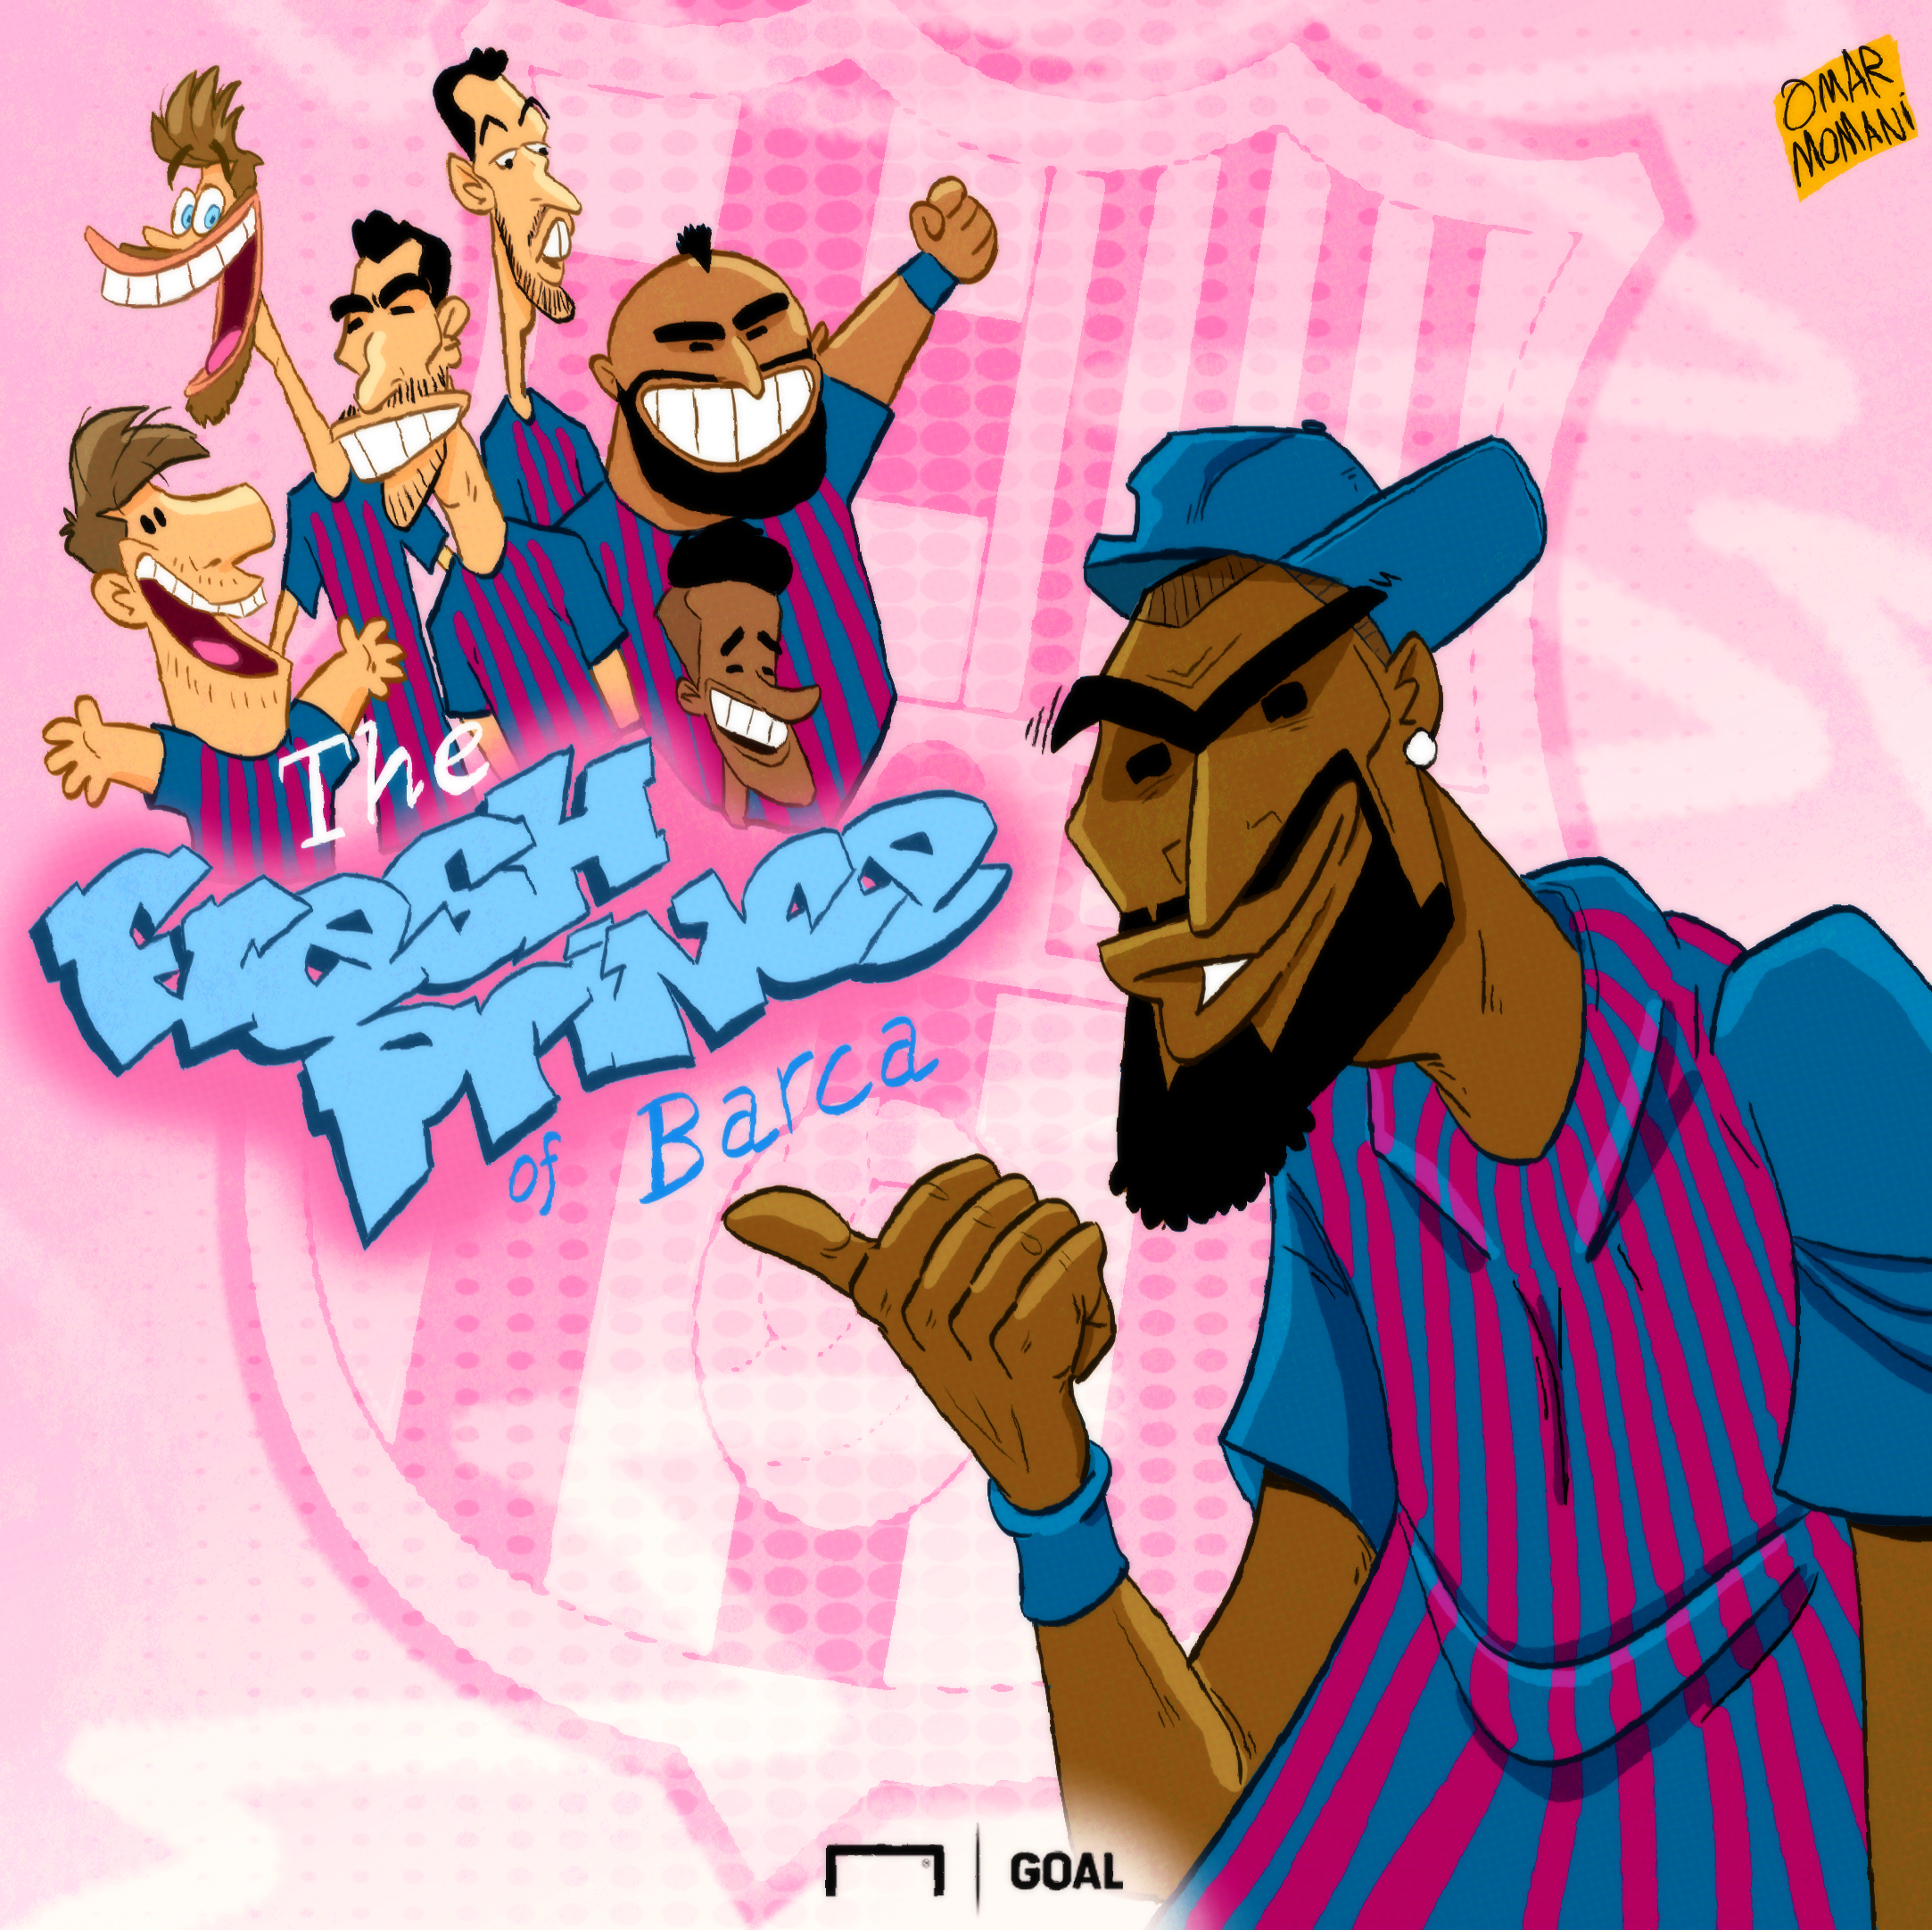 Fresh Prince Kevin Prince Boateng Cartoon